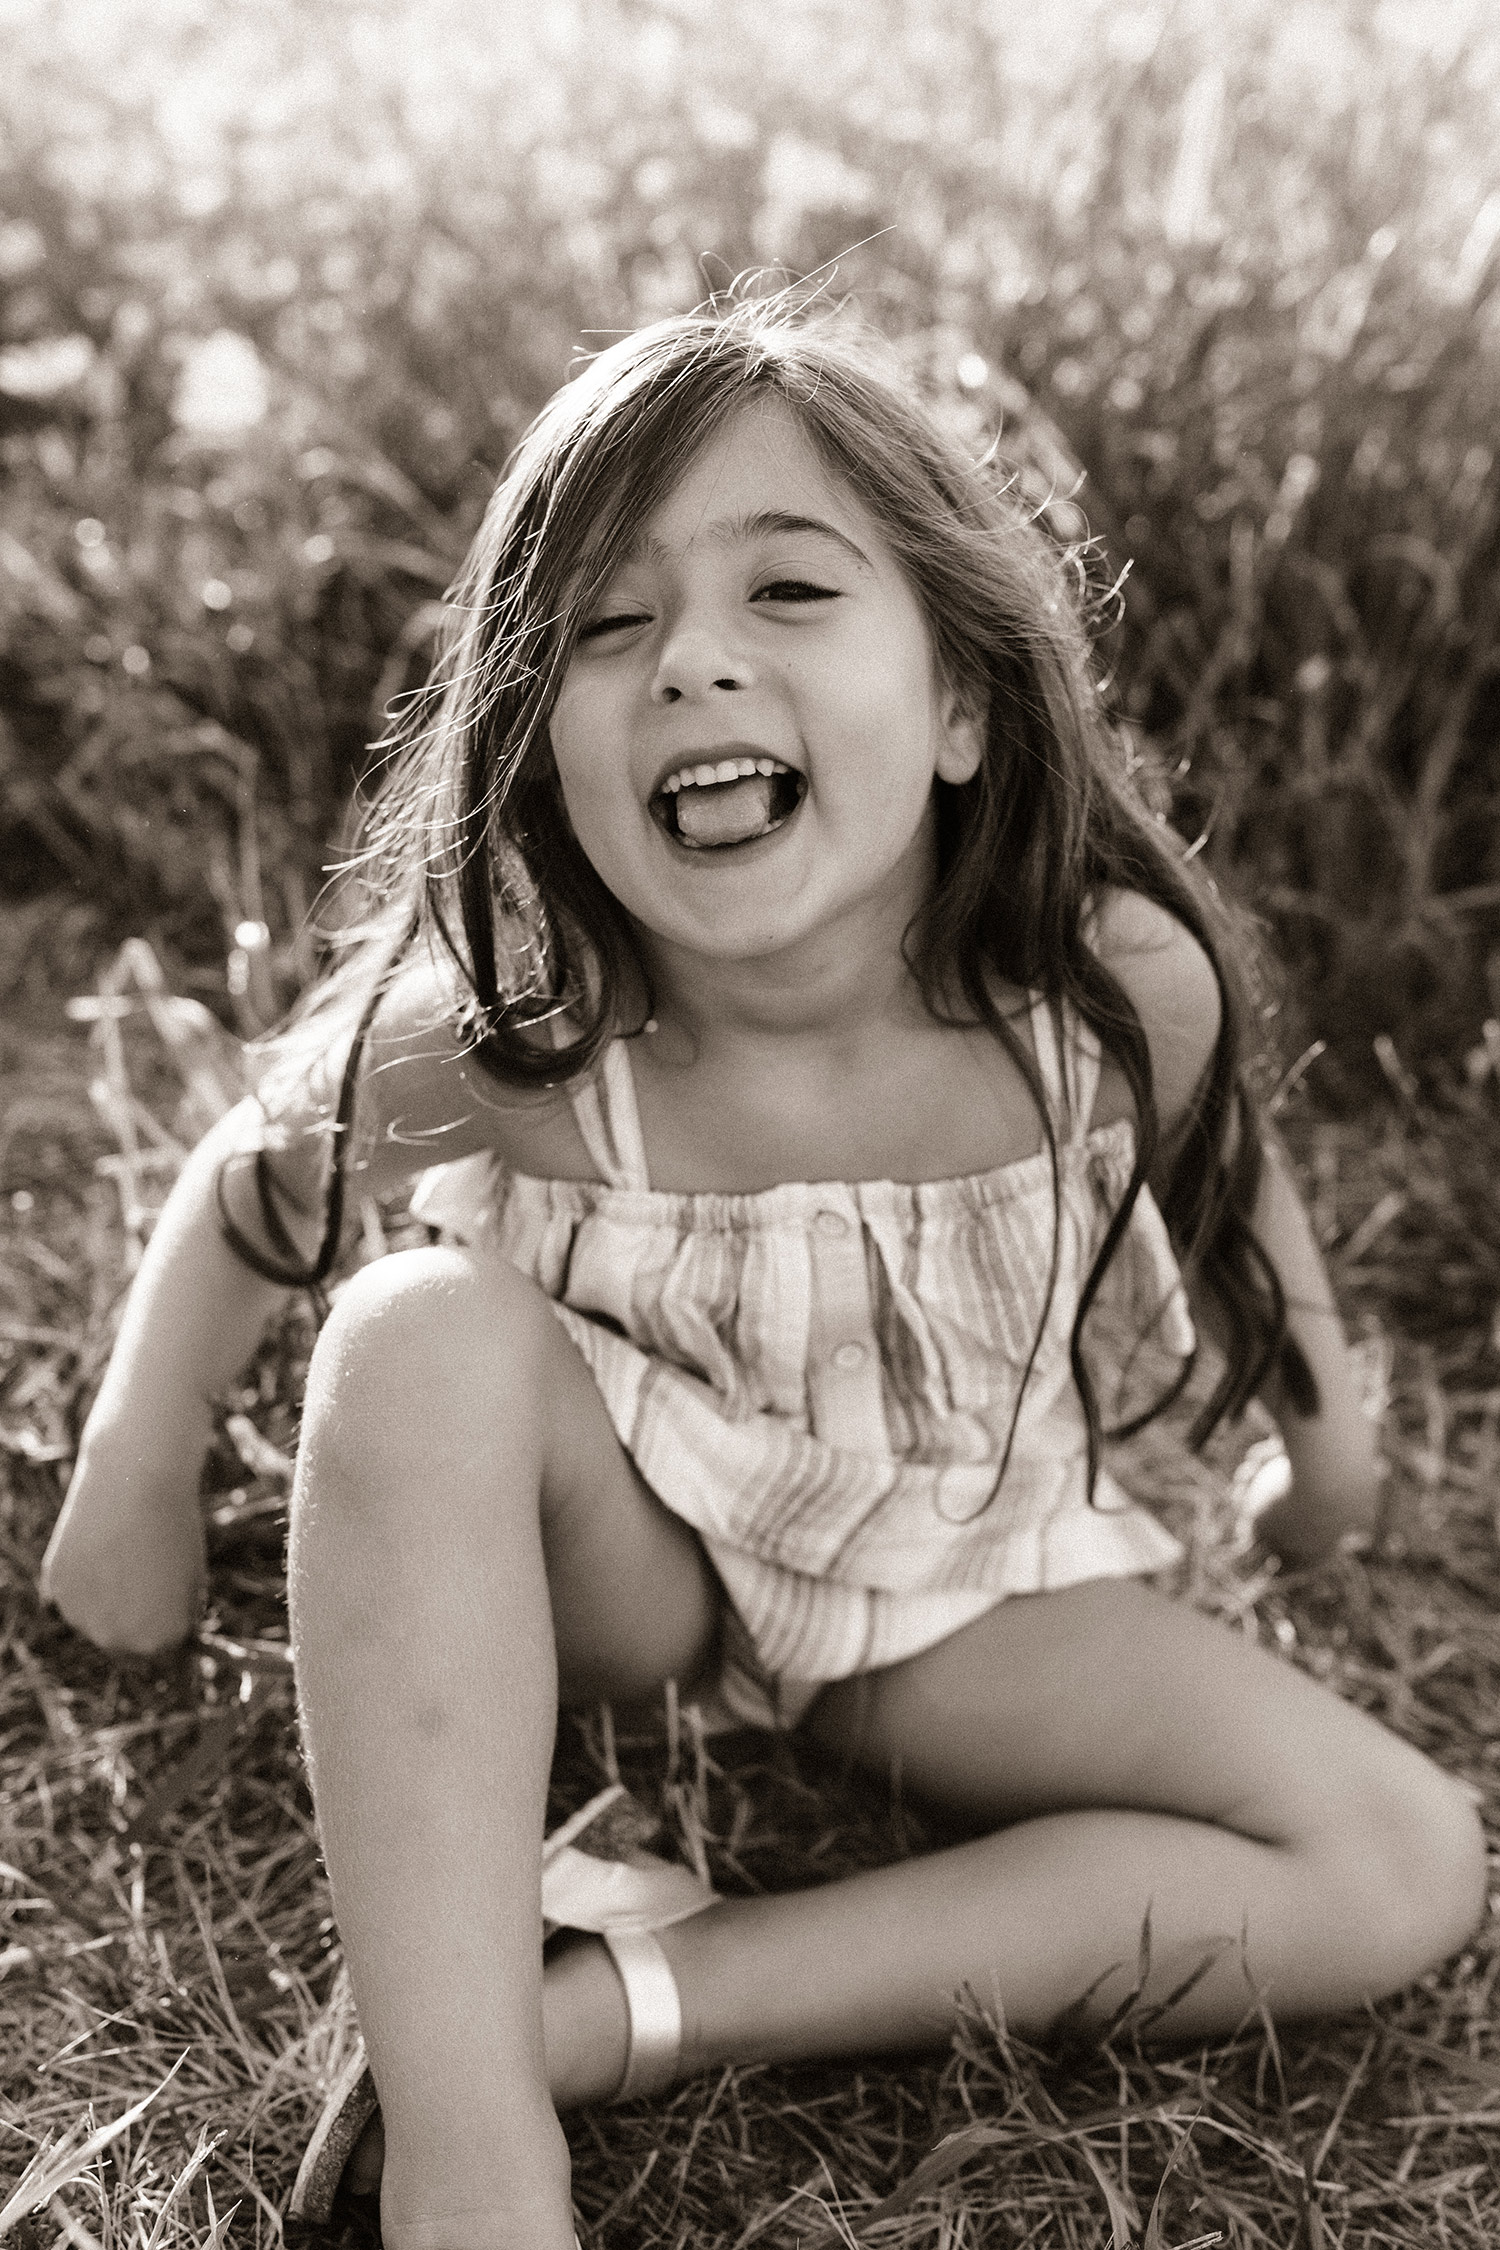 natale-family-daughter-laughing-in-grass-iris-aisle--winterset-iowa-raelyn-ramey-photography-44.jpg